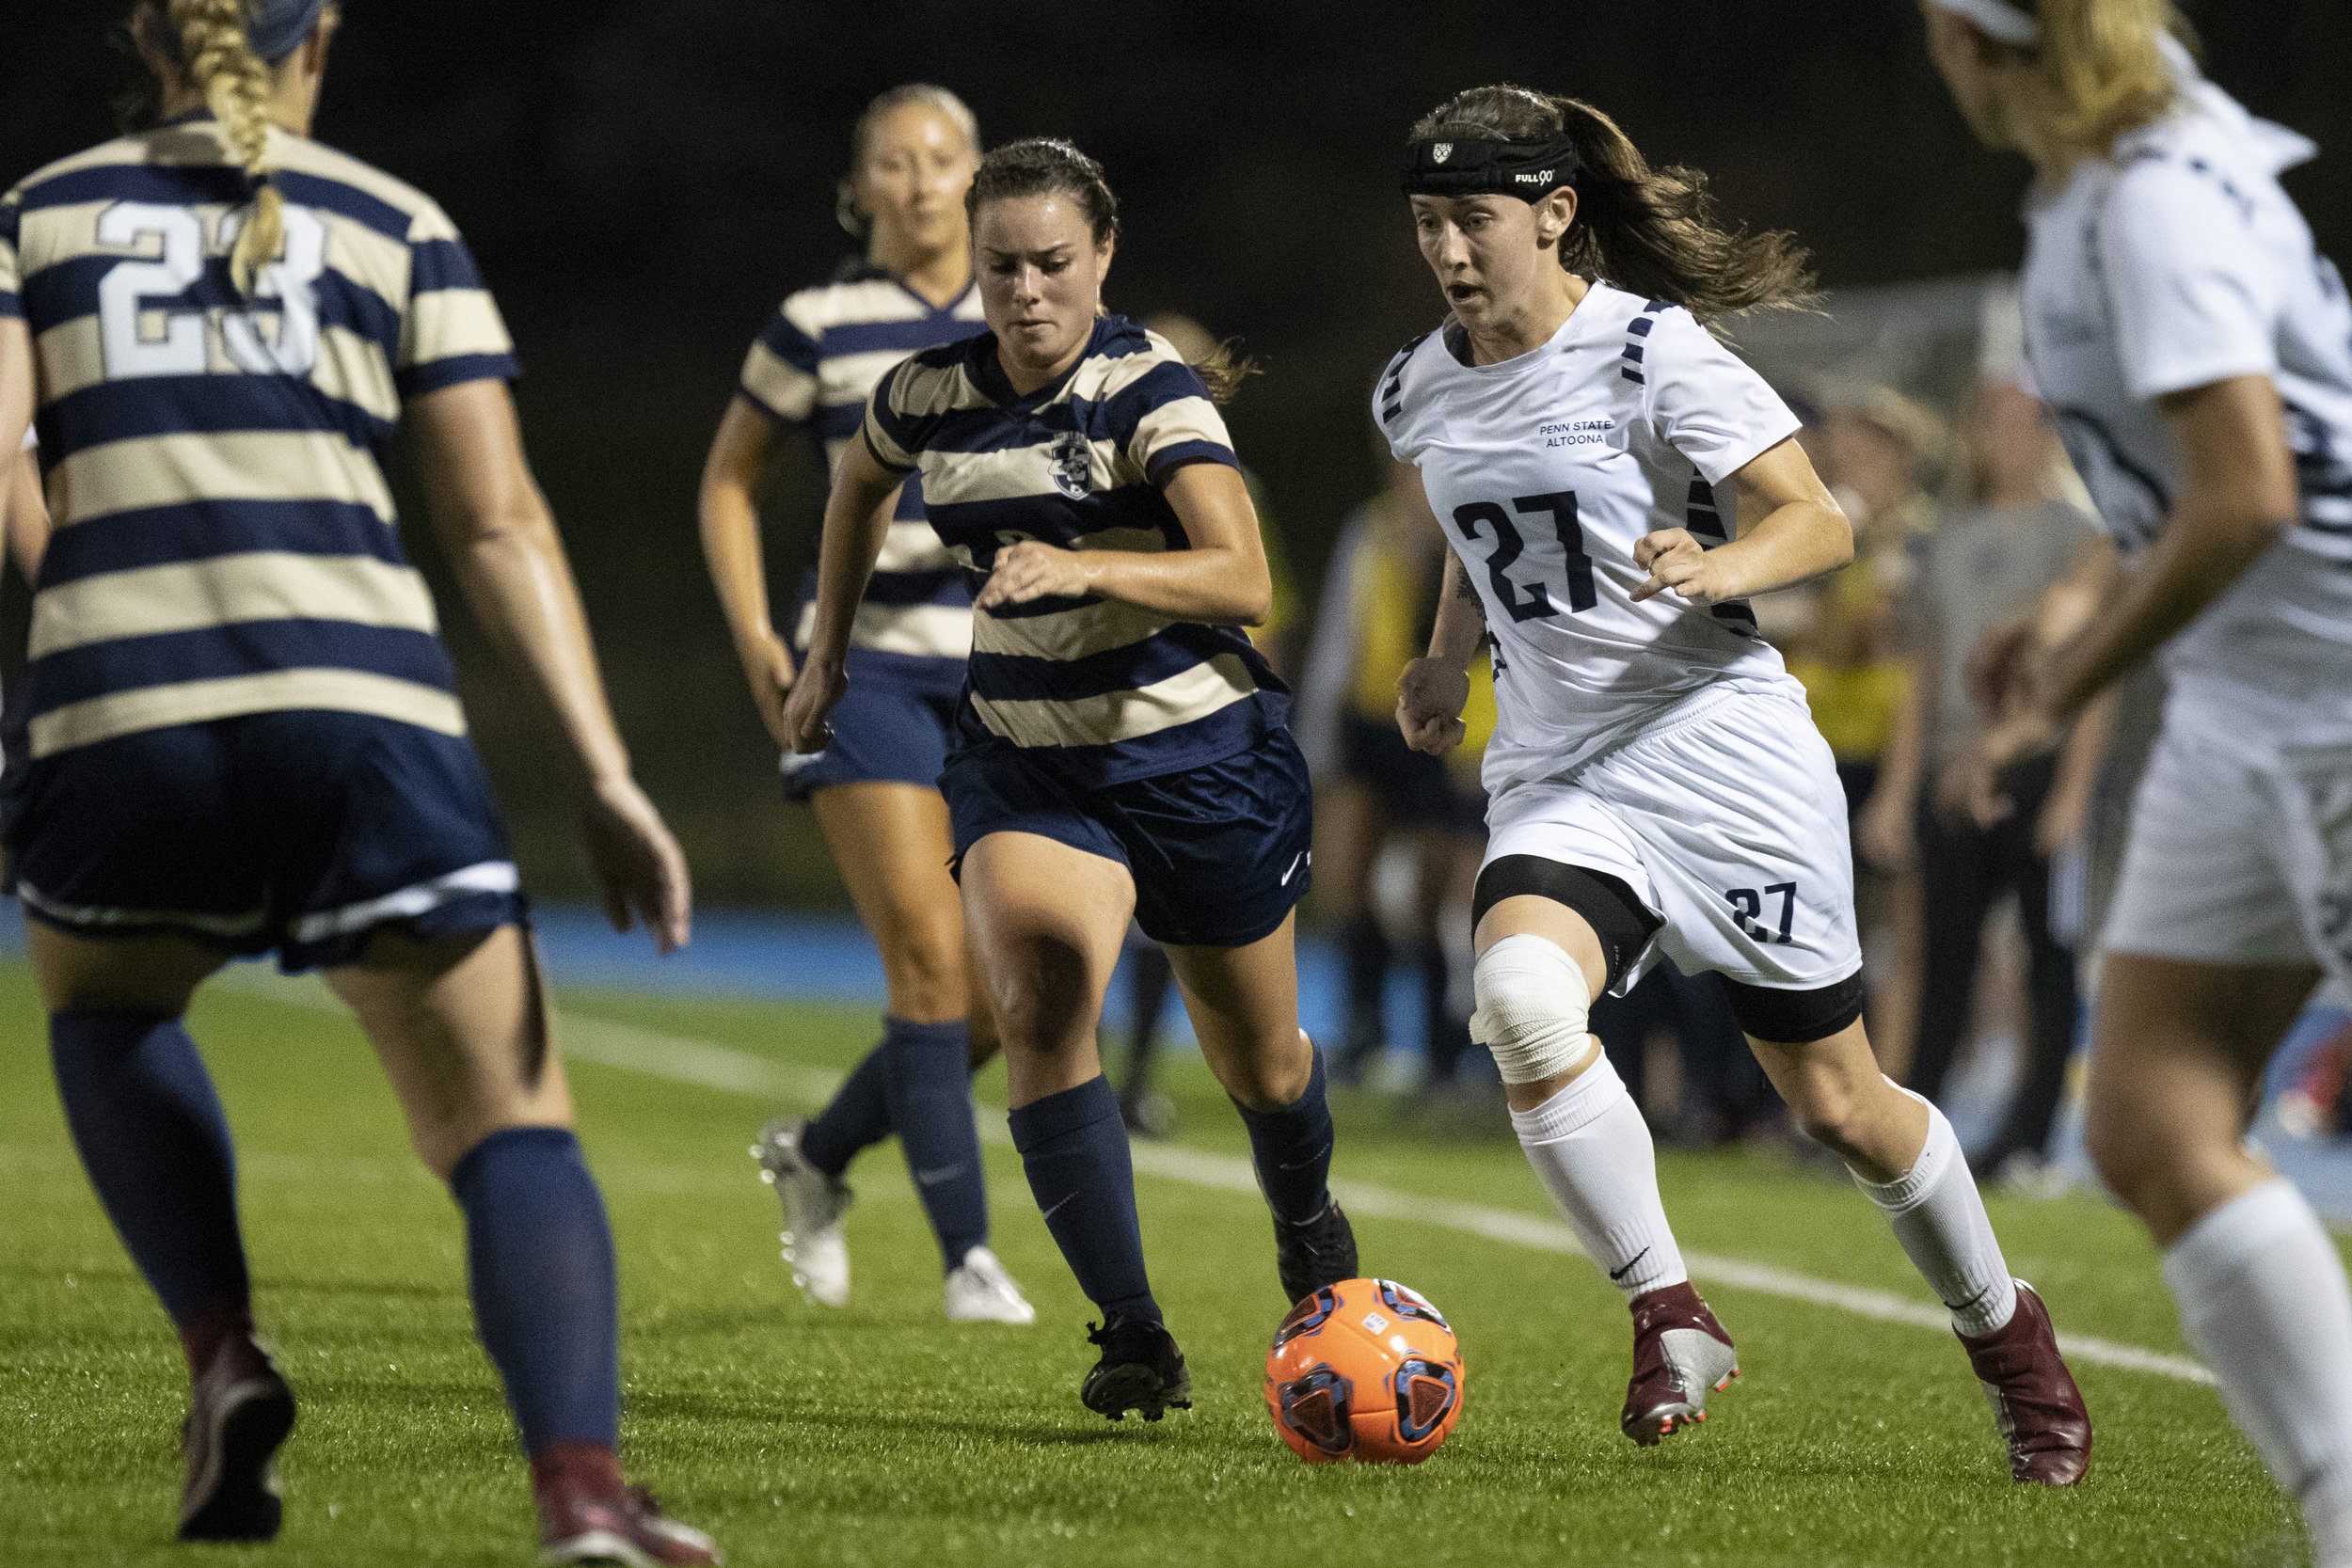 Penn State Altoona Women's Soccer player Kierra Irwin (#27) runs past Juniata College player Elizabeth Bentz (#6) and into Kristin Racis (#23) in Altoona's 4-1 win against Juniata College on Wednesday, September 19th, 2018 at Spring Run Stadium. - Photo By: Noah Riffe